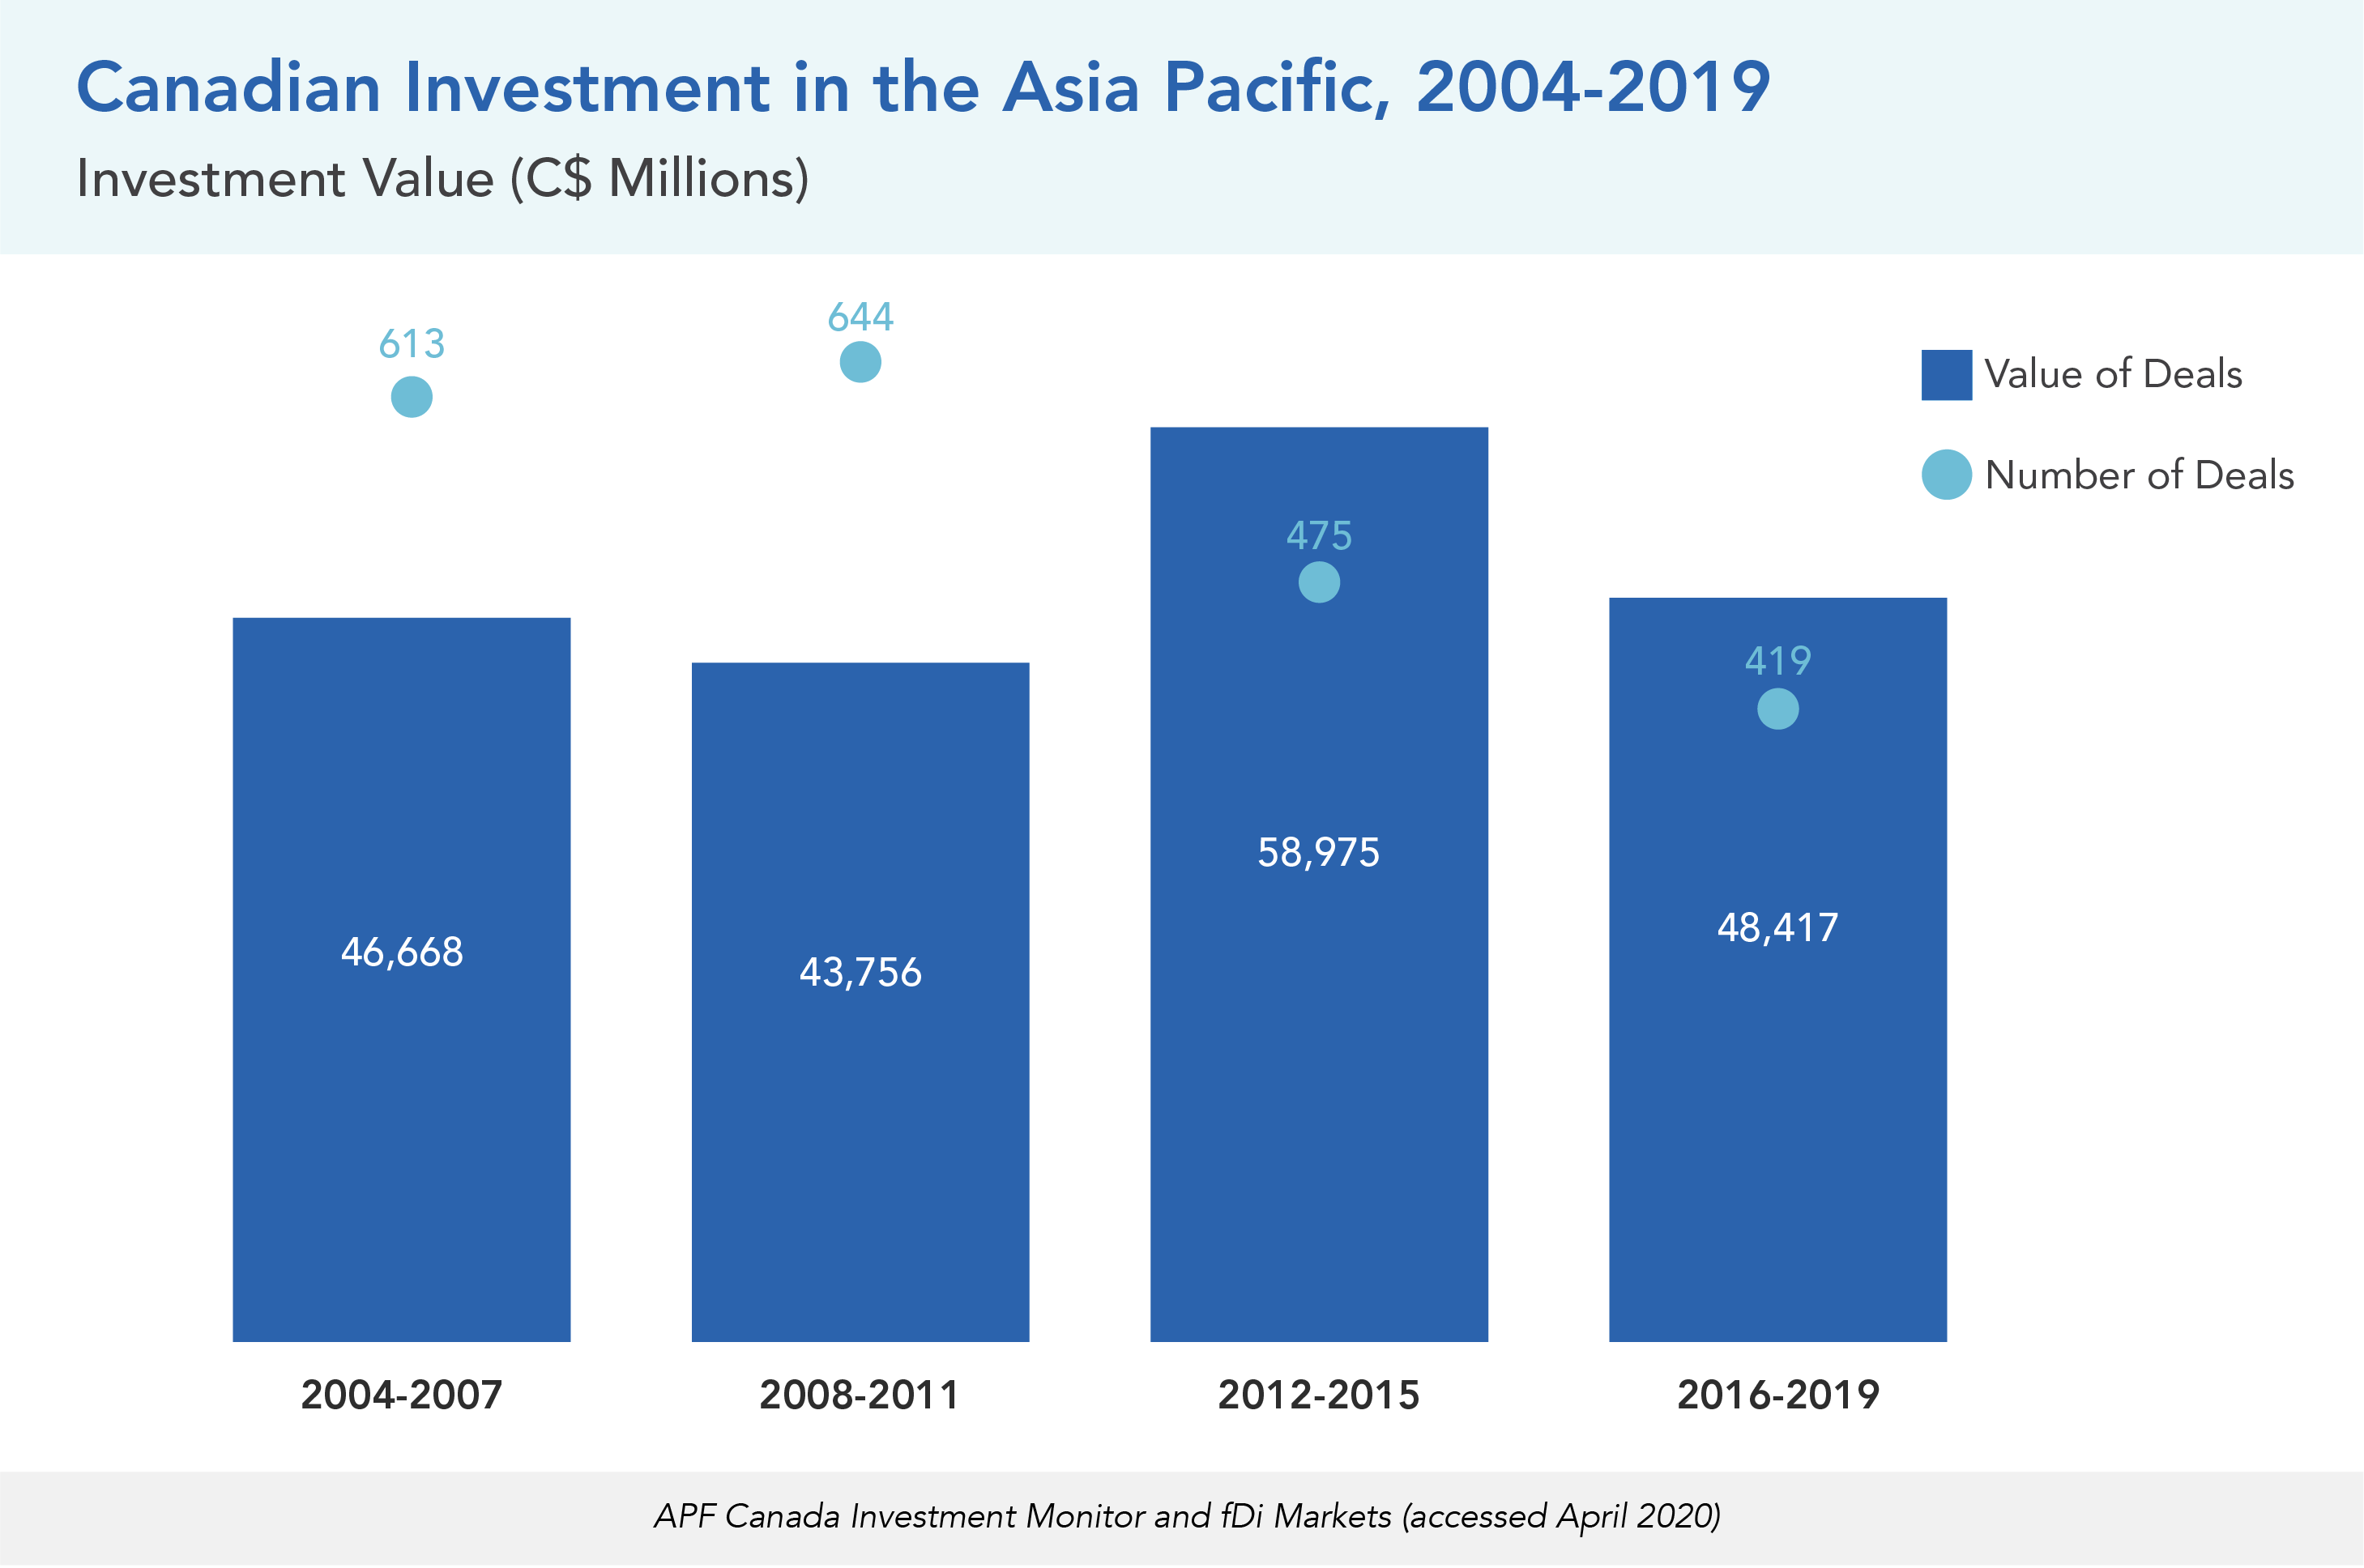 Canadian Investment in the Asia Pacific, 2004-2019